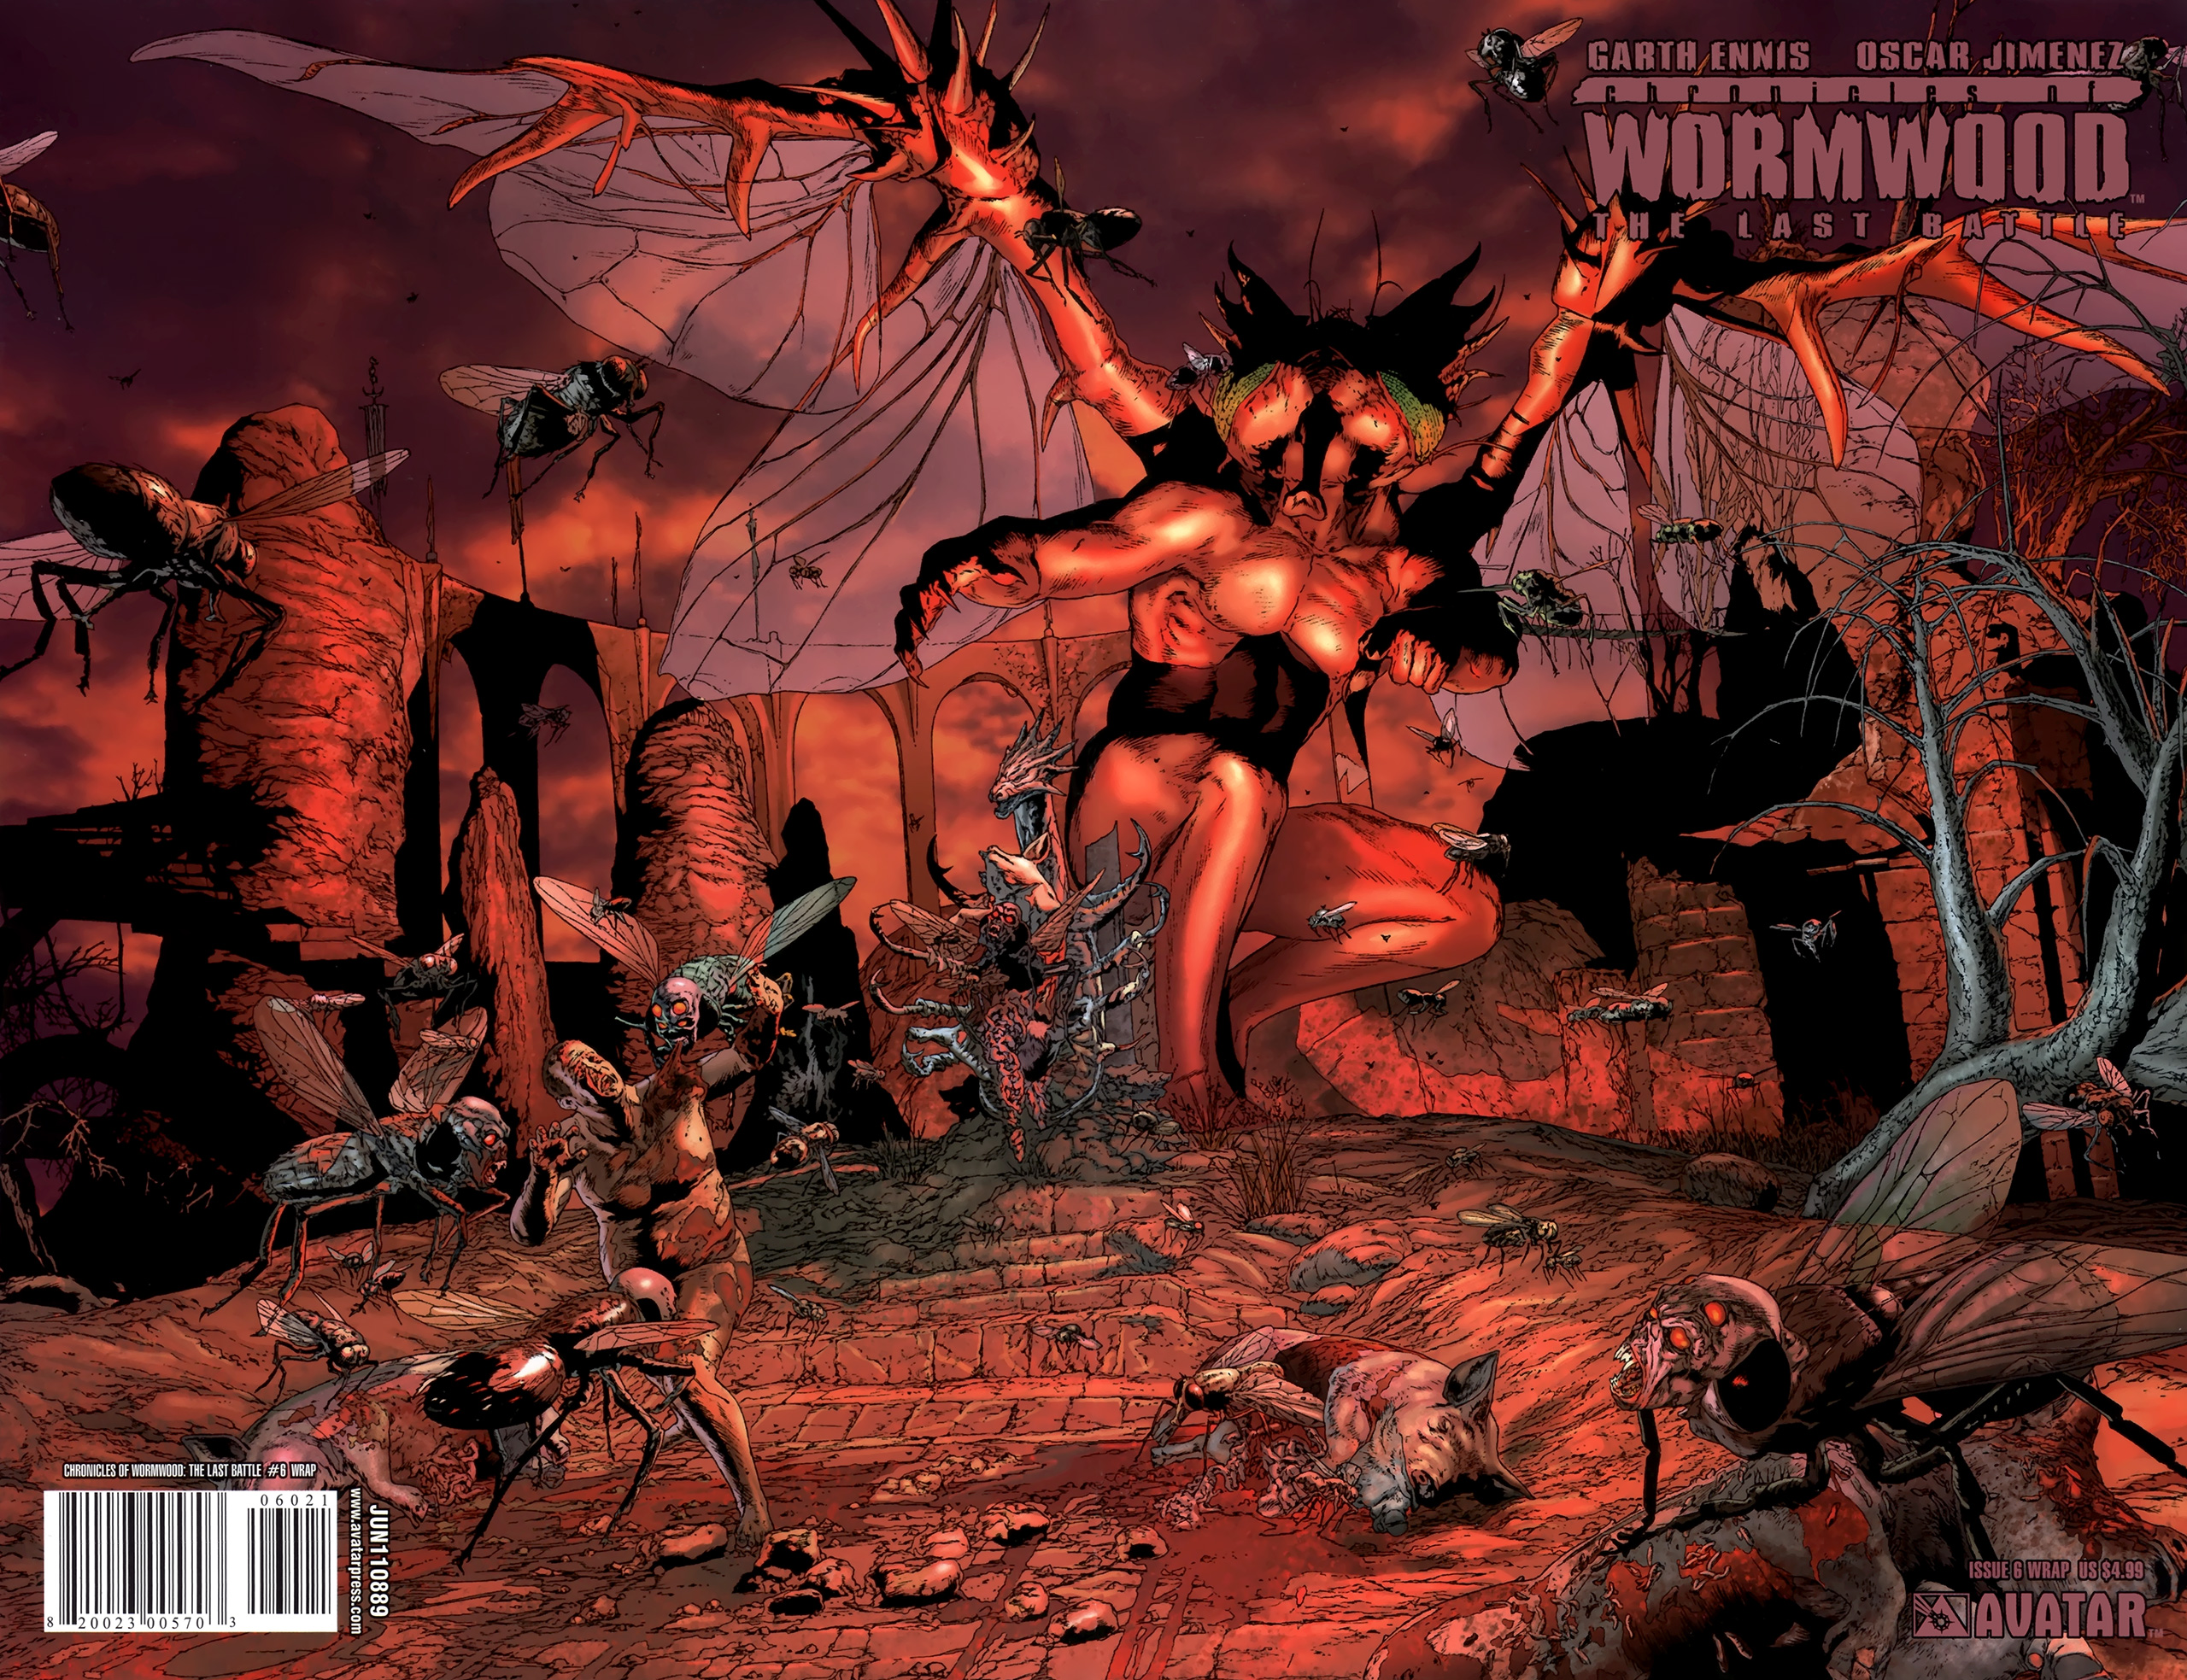 Read online Chronicles of Wormwood: The Last Battle comic -  Issue #6 - 2